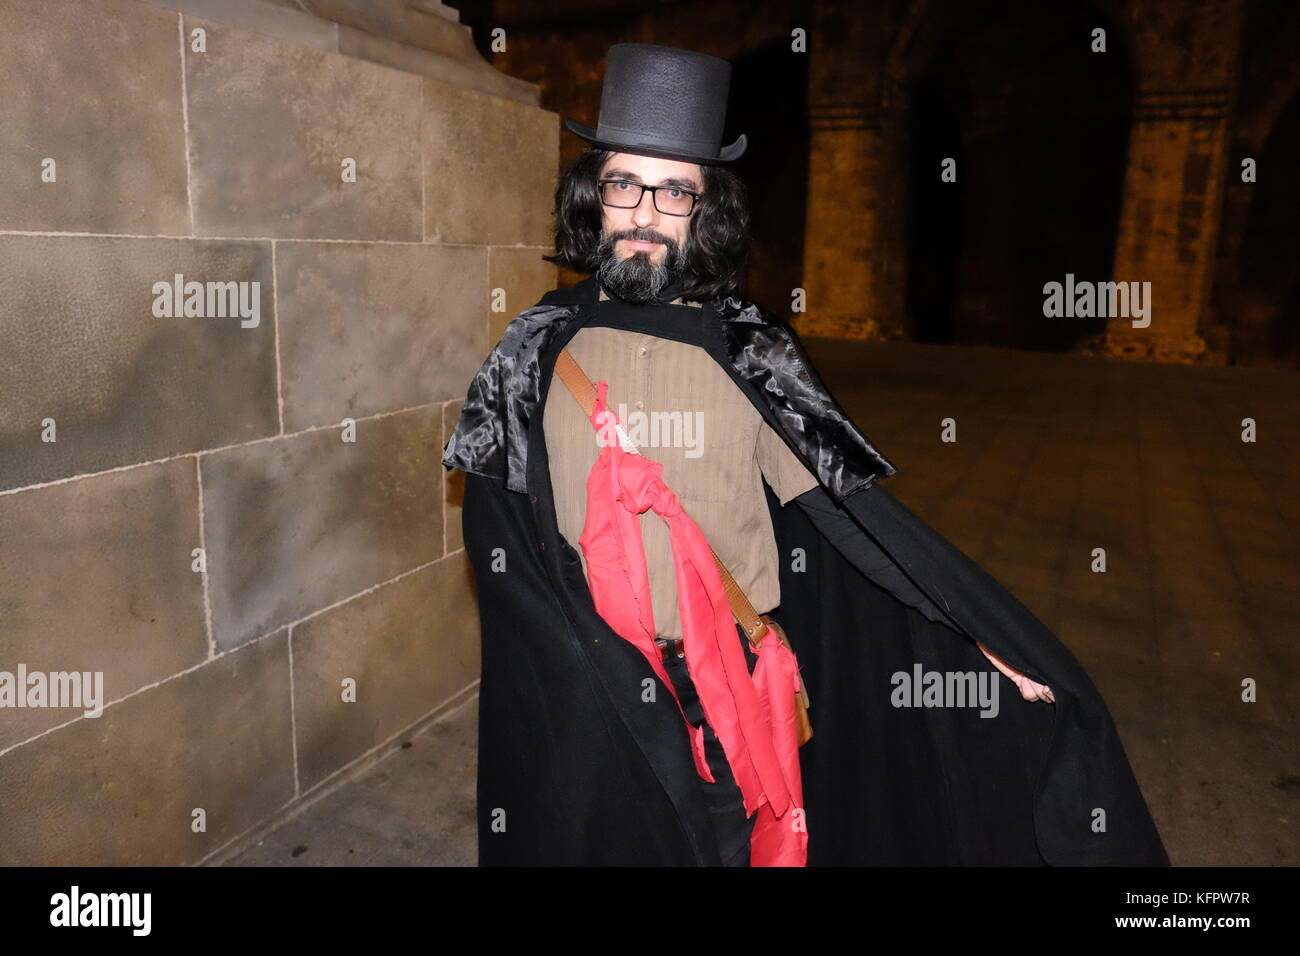 barcelona spain 31st oct 2017 a man wearing a top hat and cloak halloween costume joe obrienalamy live news